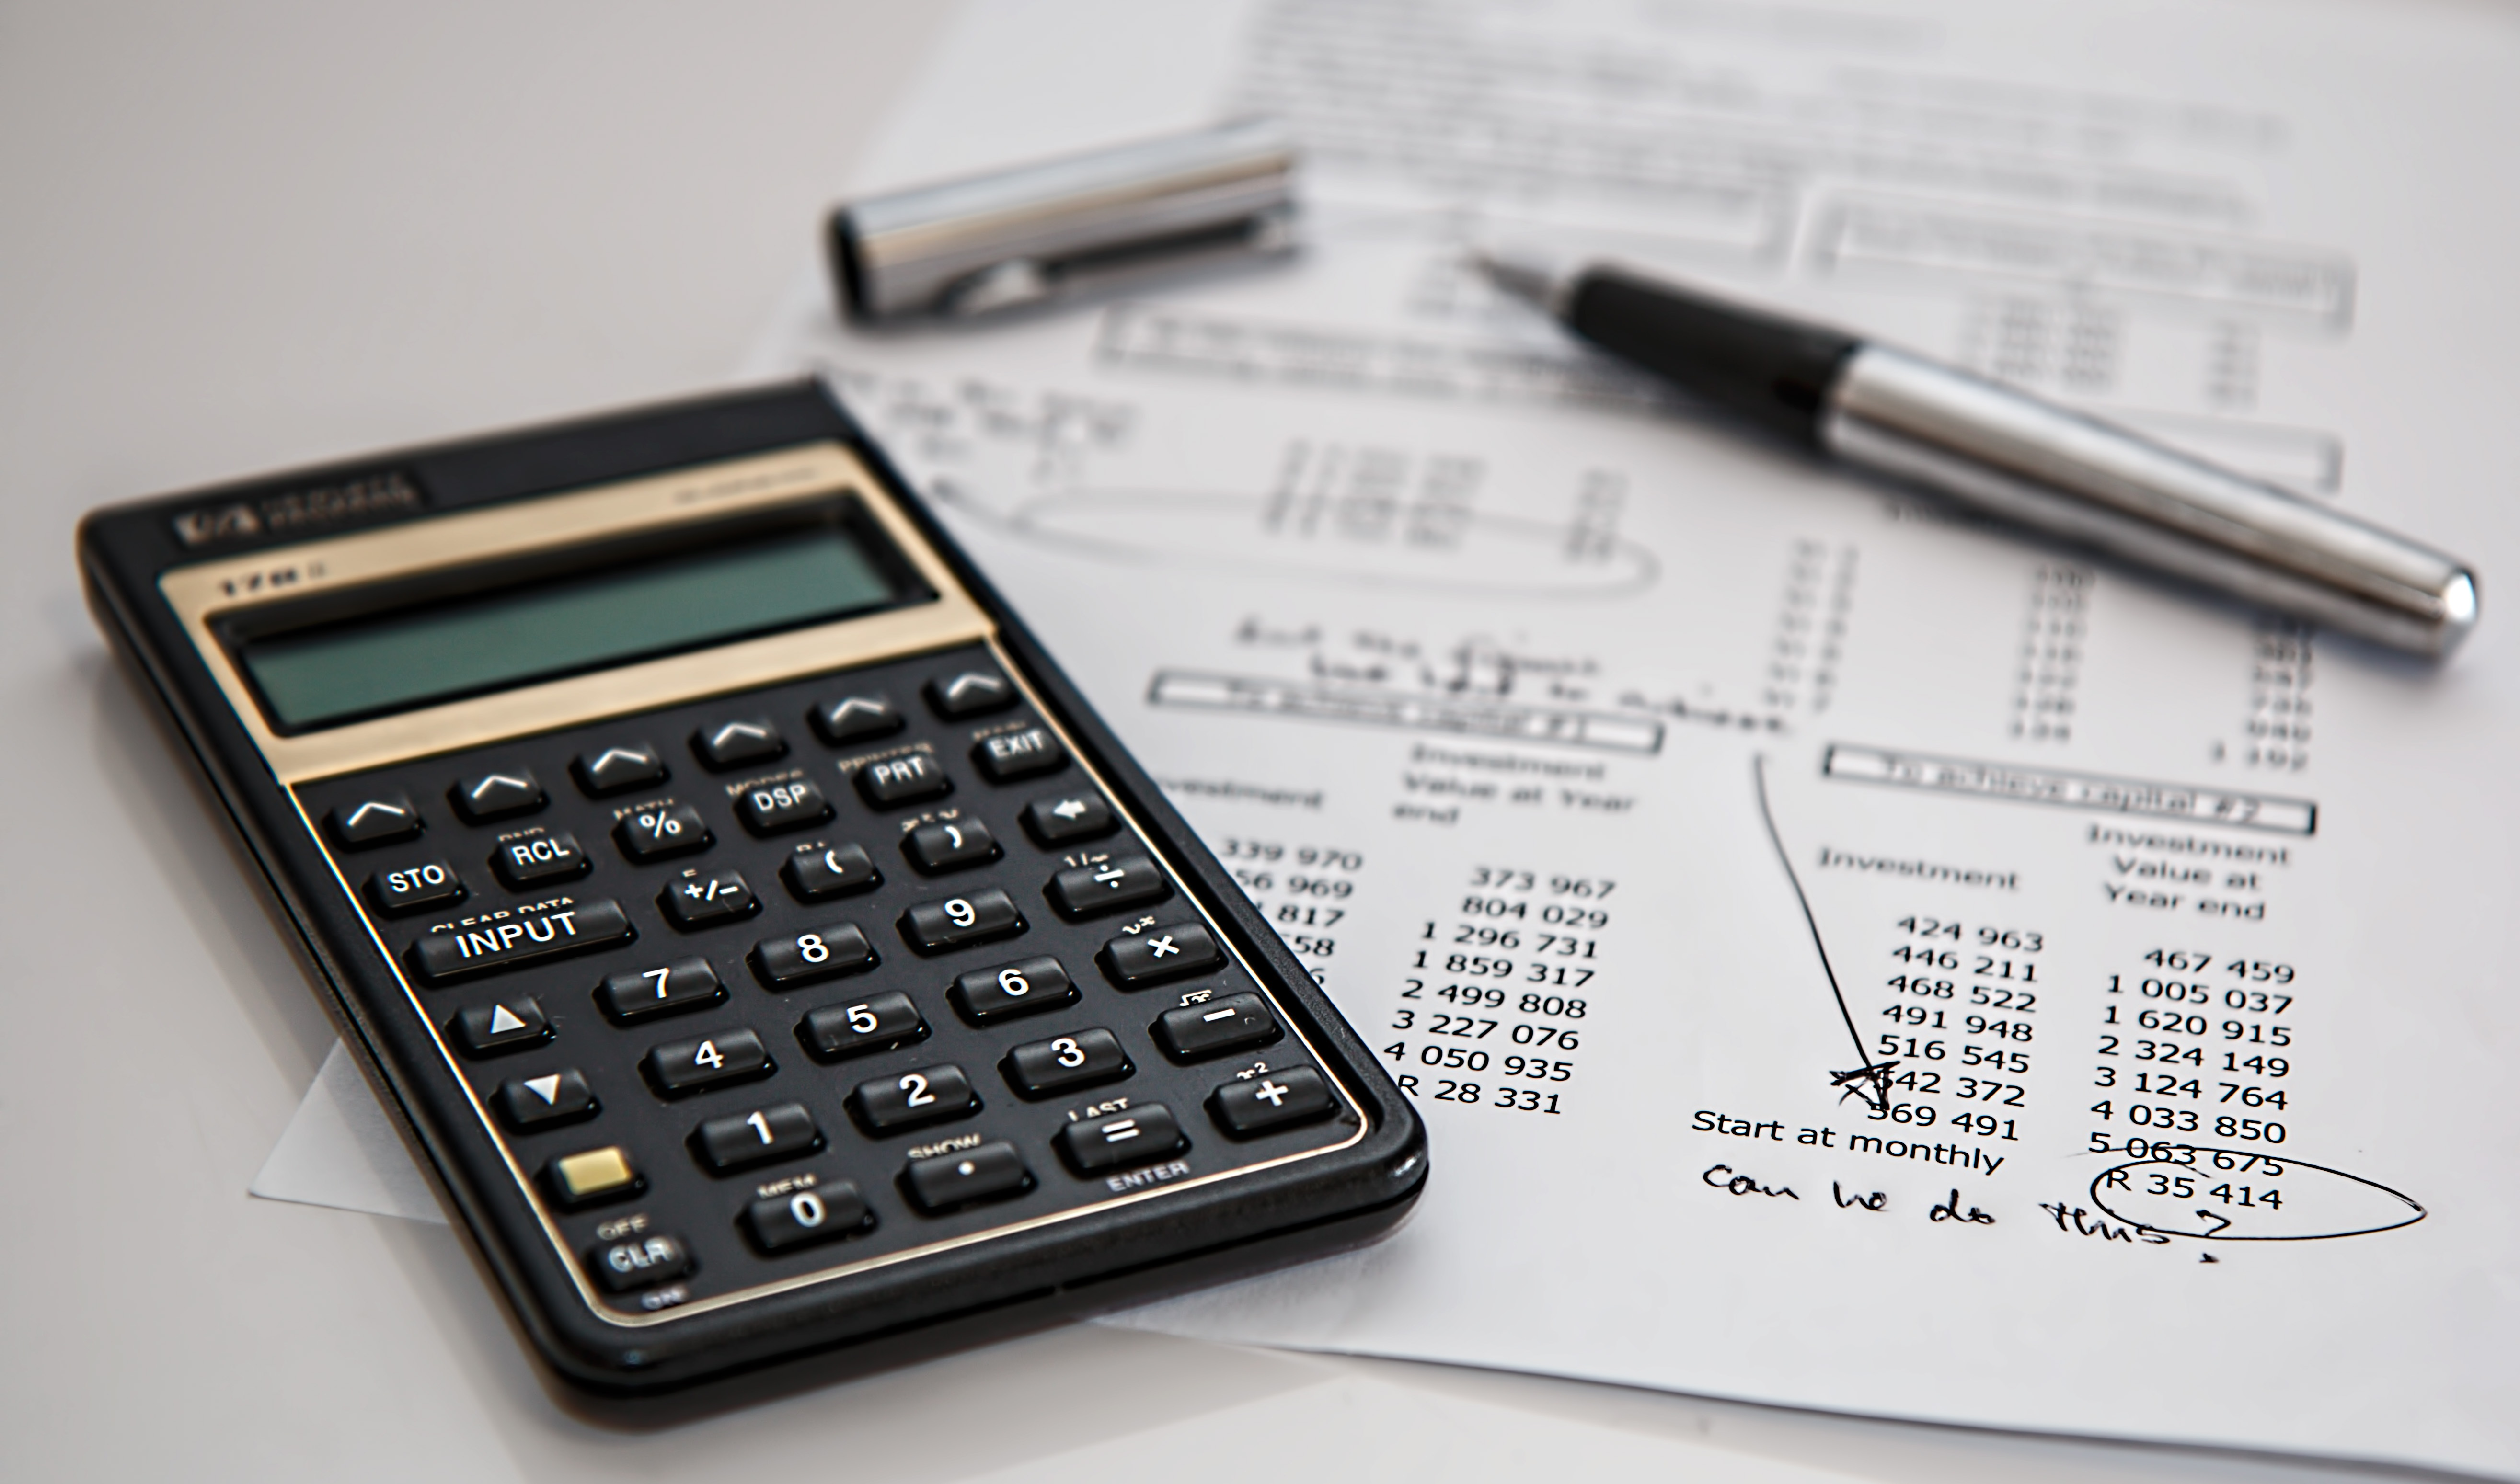 Calculating The Costs Of Buying From Alibaba